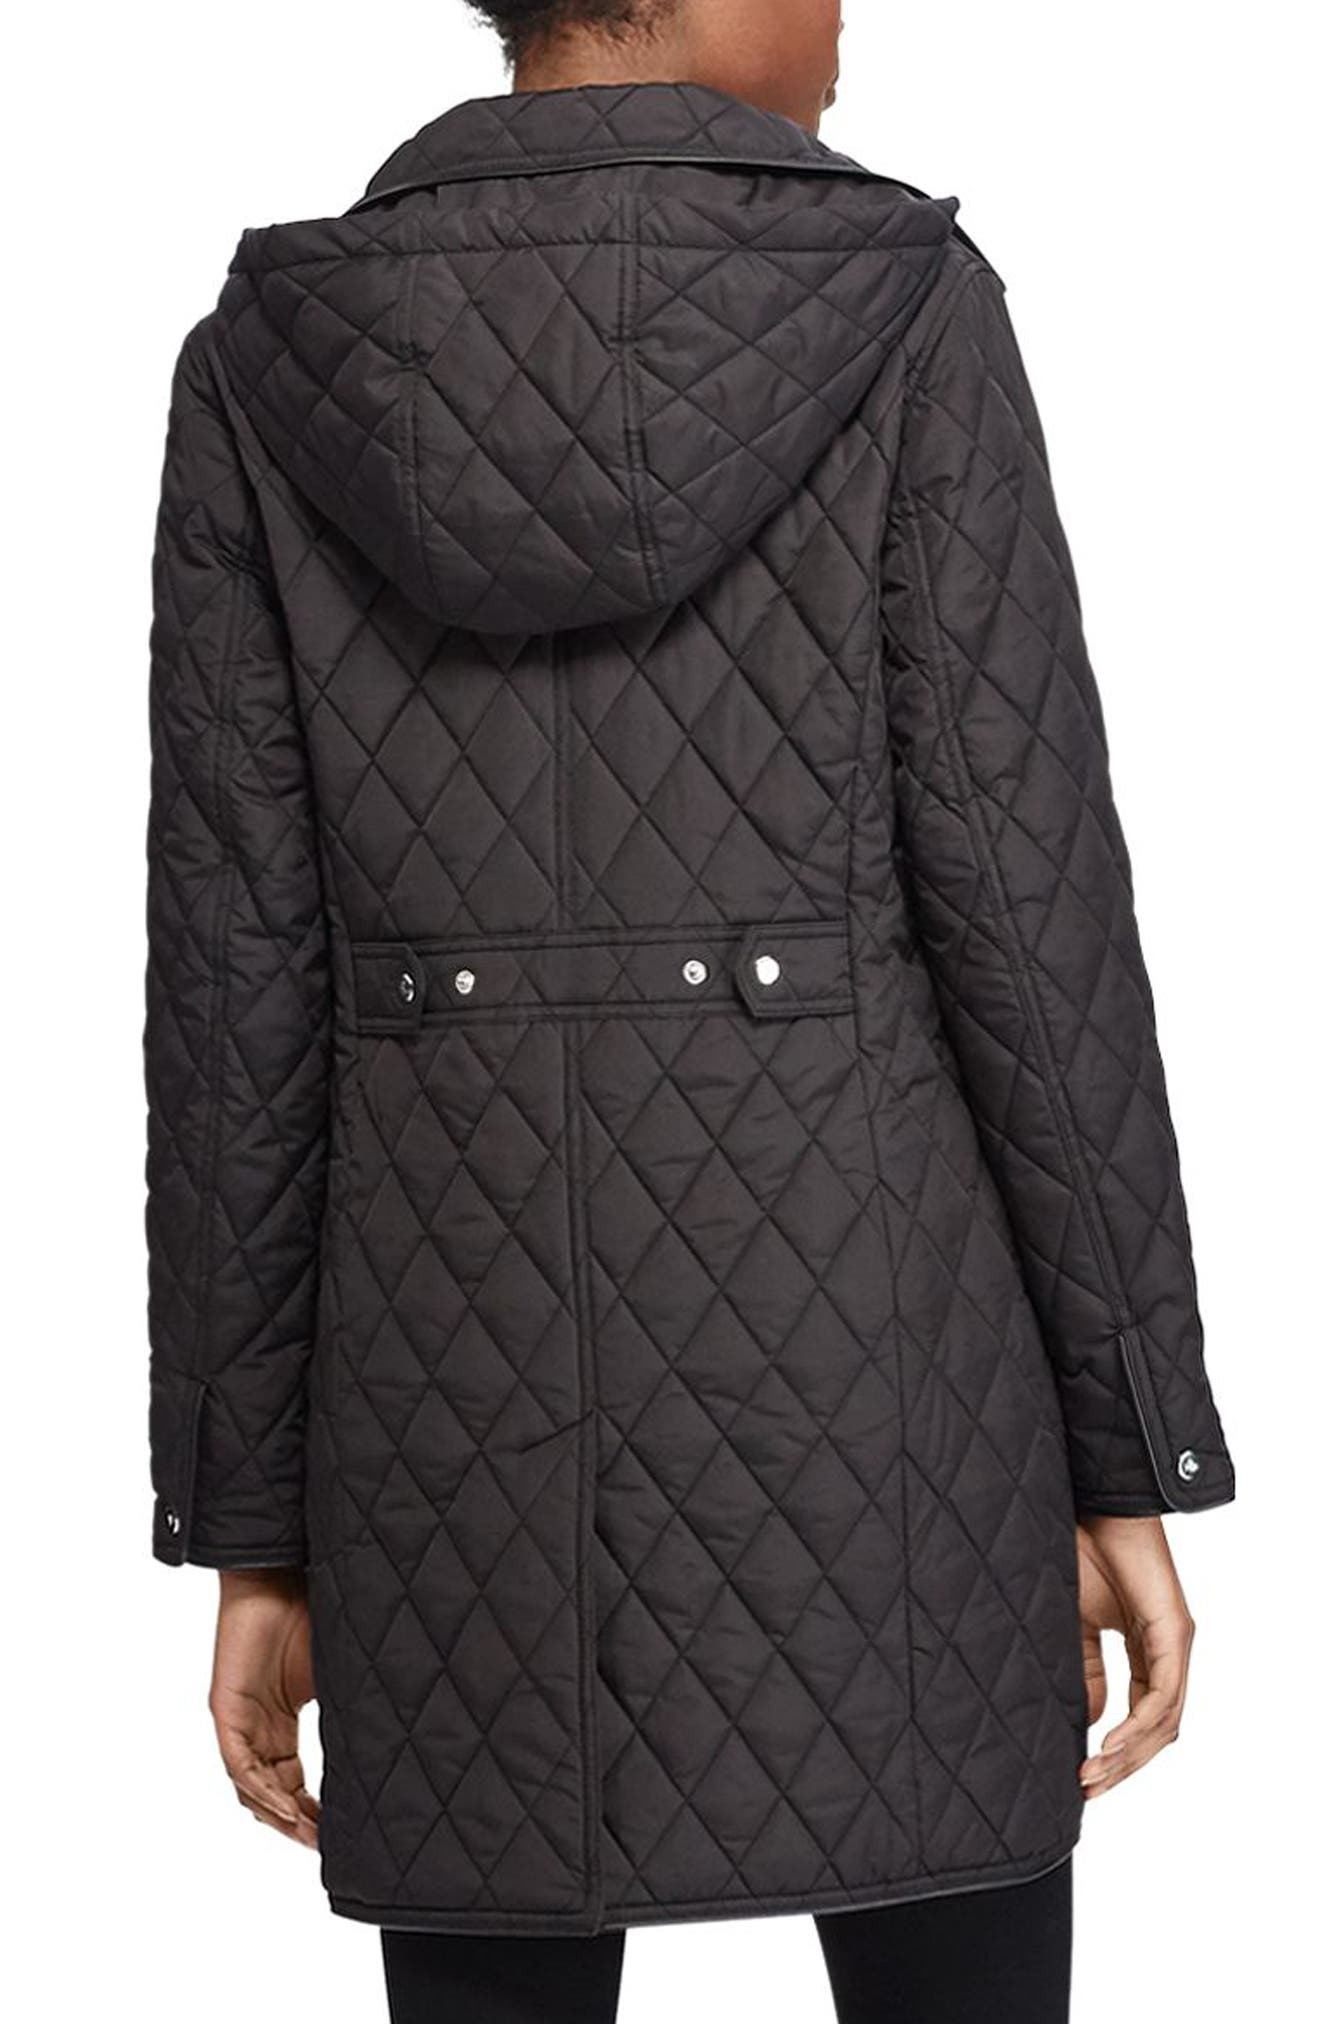 LAUREN RALPH LAUREN,                             Quilted Hooded Jacket,                             Alternate thumbnail 2, color,                             001